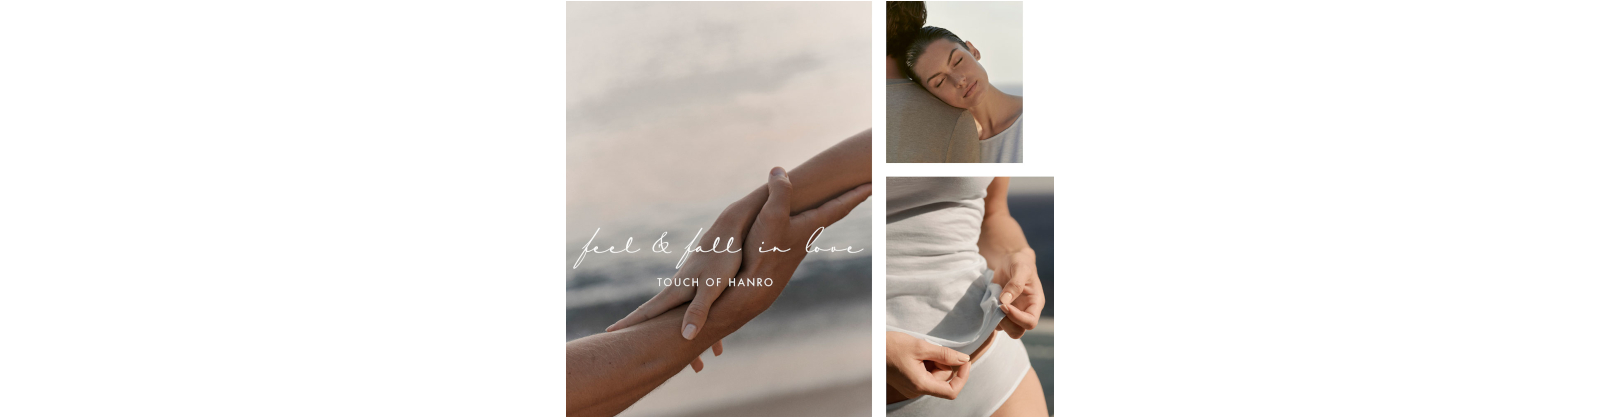 TOUCH OF HANRO Kampagne